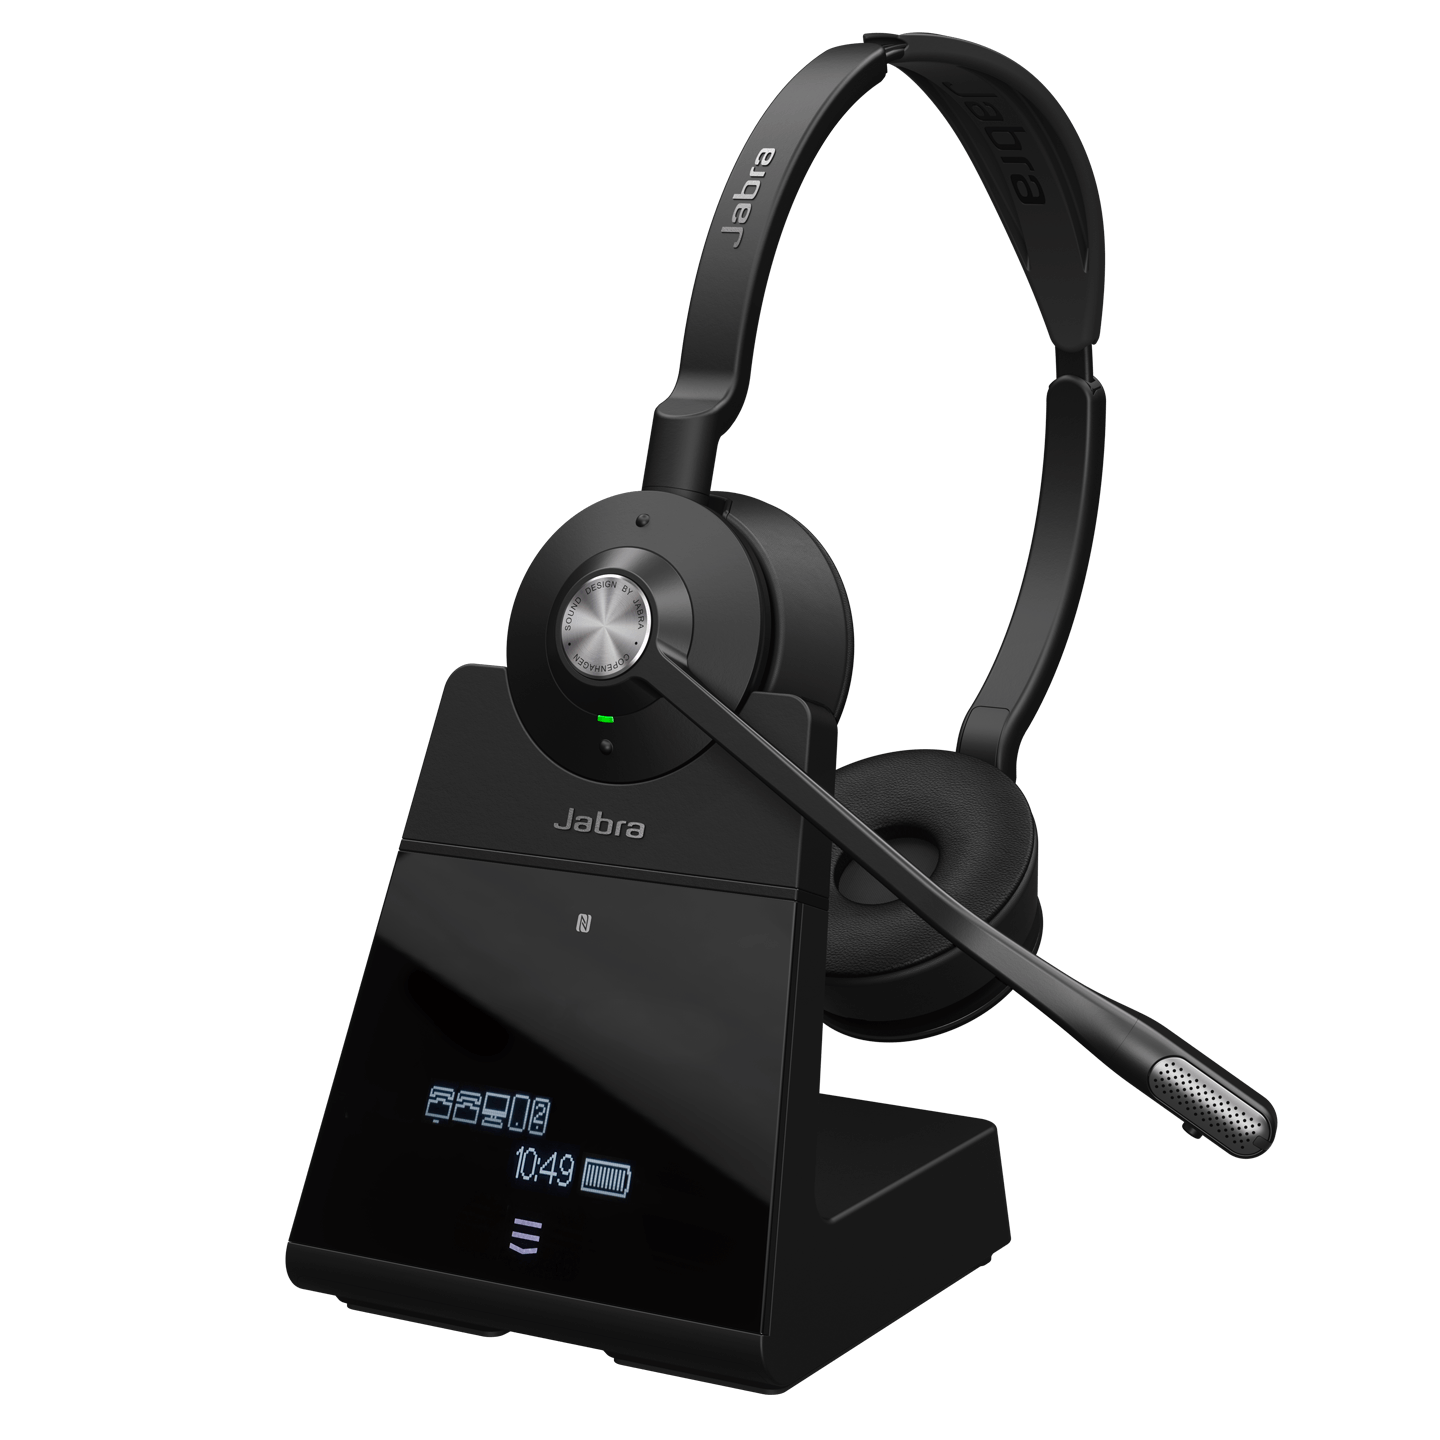 Boom Headset With Mic Wiring Diagram Opinions About 3 Pin Microphone Diagrams All Products Jabra Rh Com